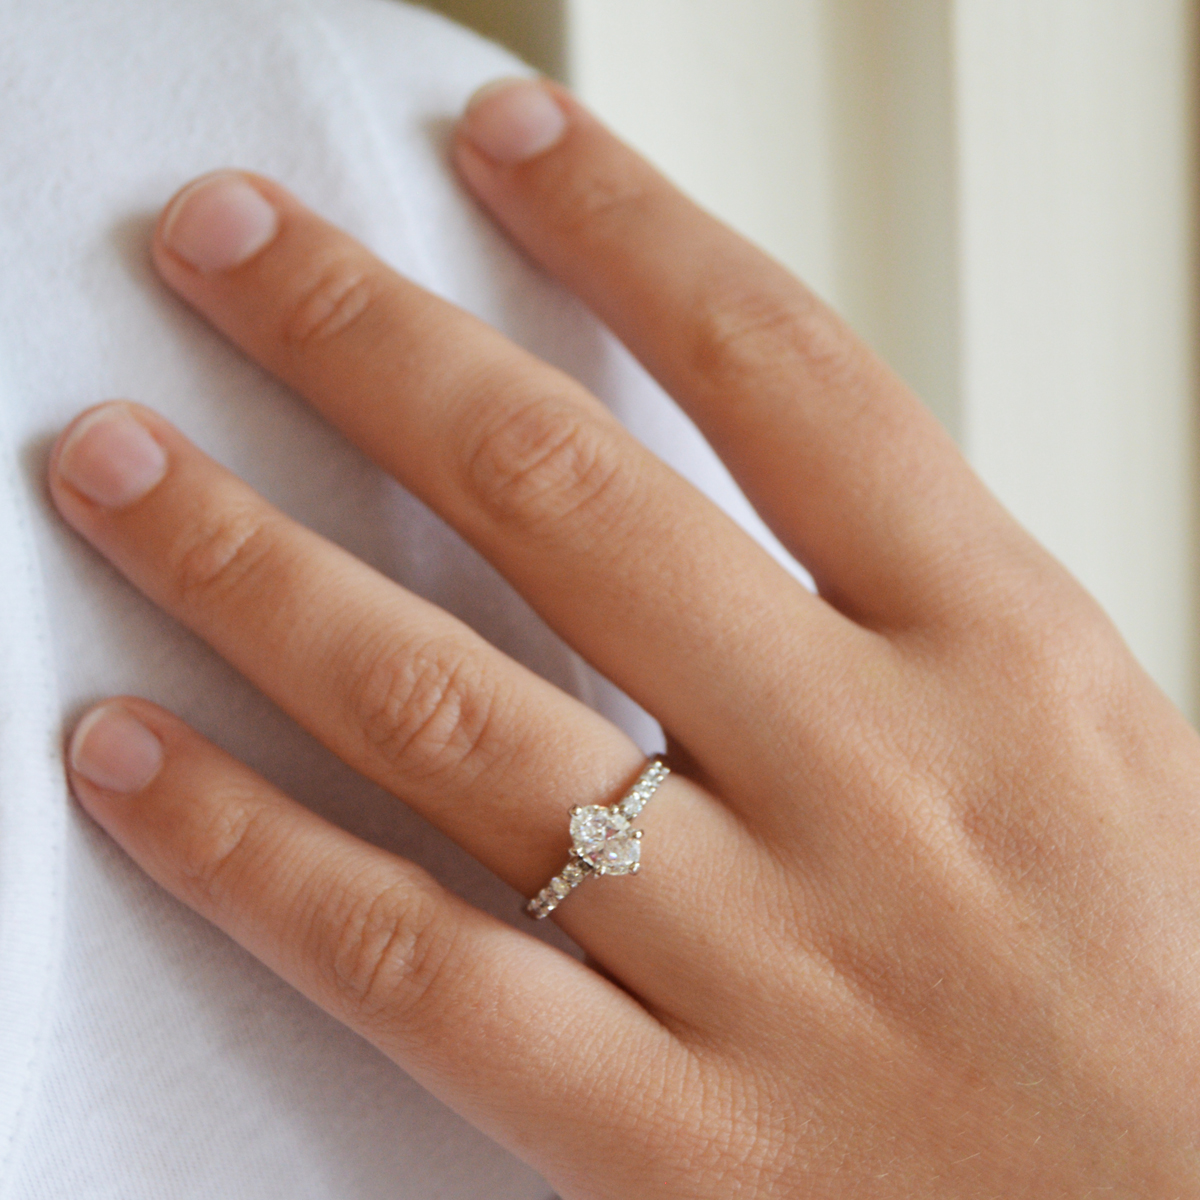 Oval engagement ring with shared prong shank diamonds and 6-prong oval diamond center stone.